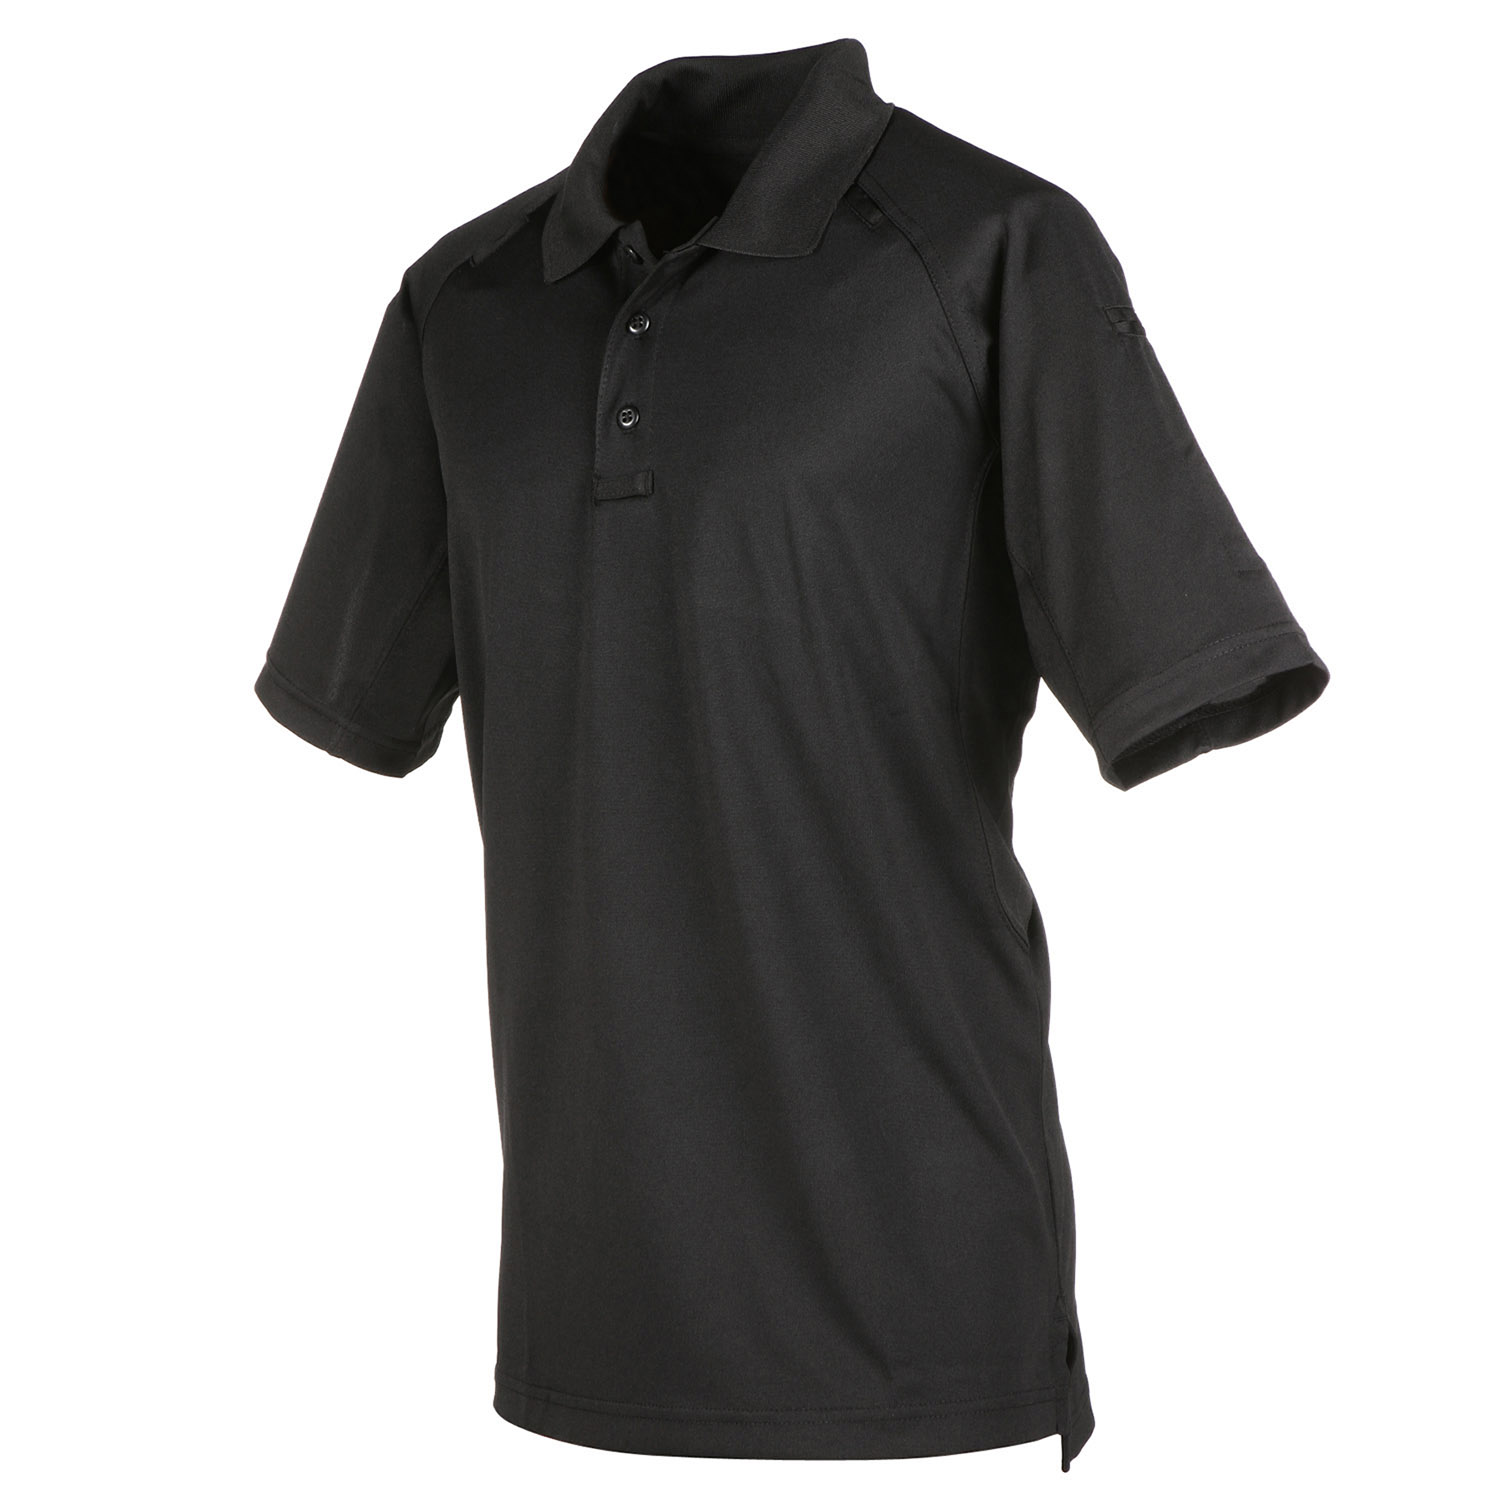 5.11 Tactical Men's Snag-Free Performance Short Sleeve Polo